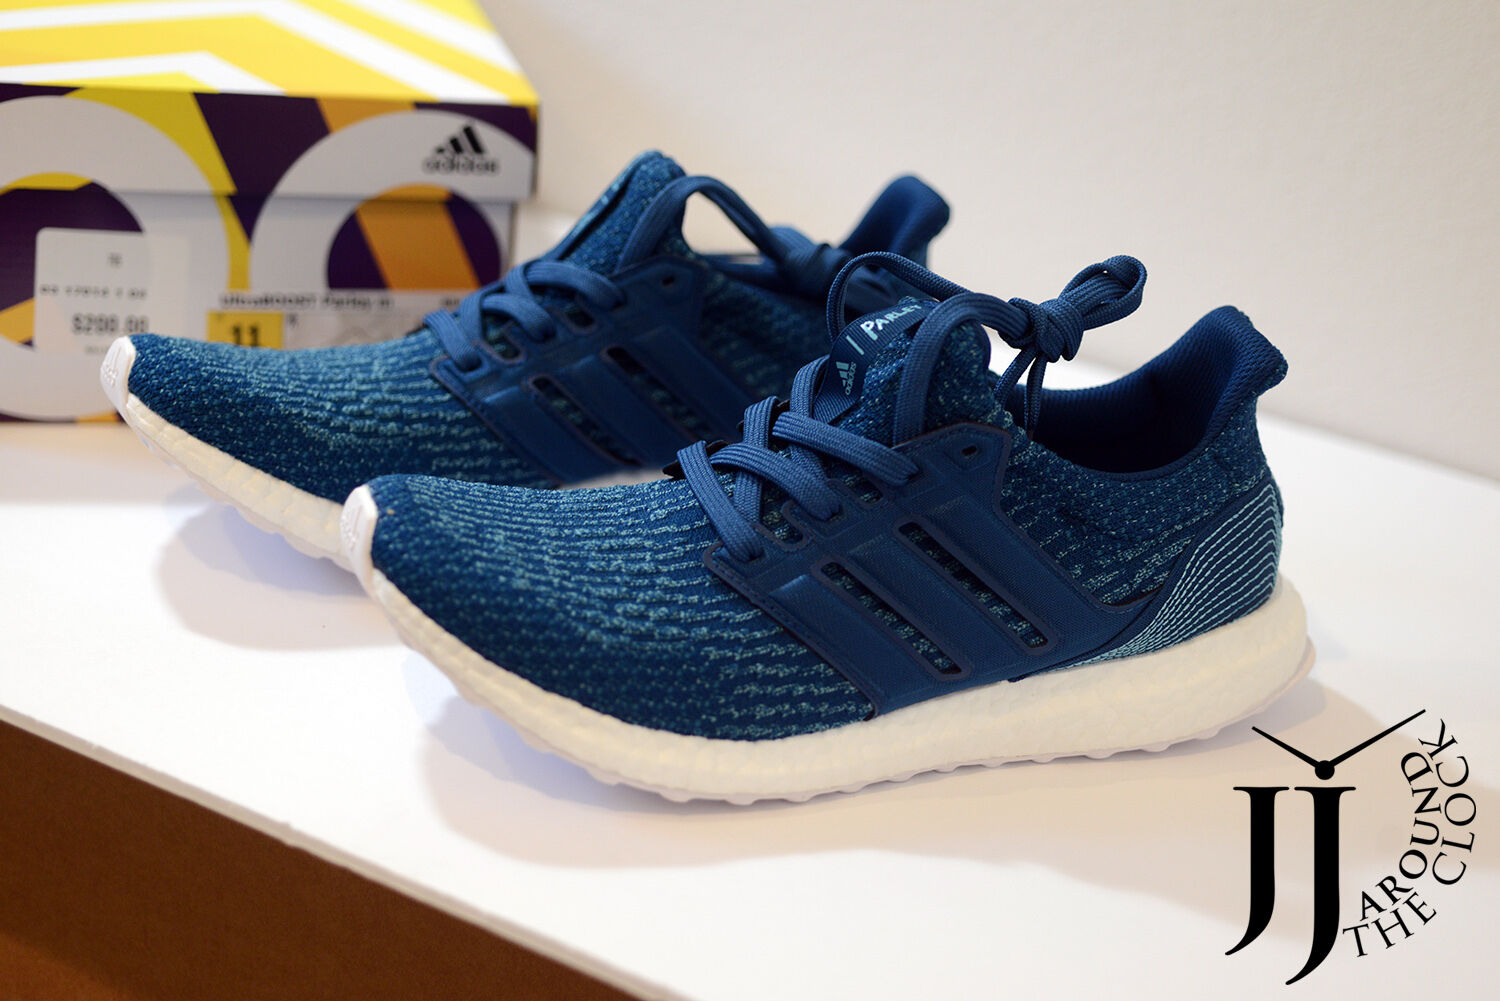 b14d31d41d586 Details about 2017 Adidas Ultra Boost X Parley Oceans 30 Night